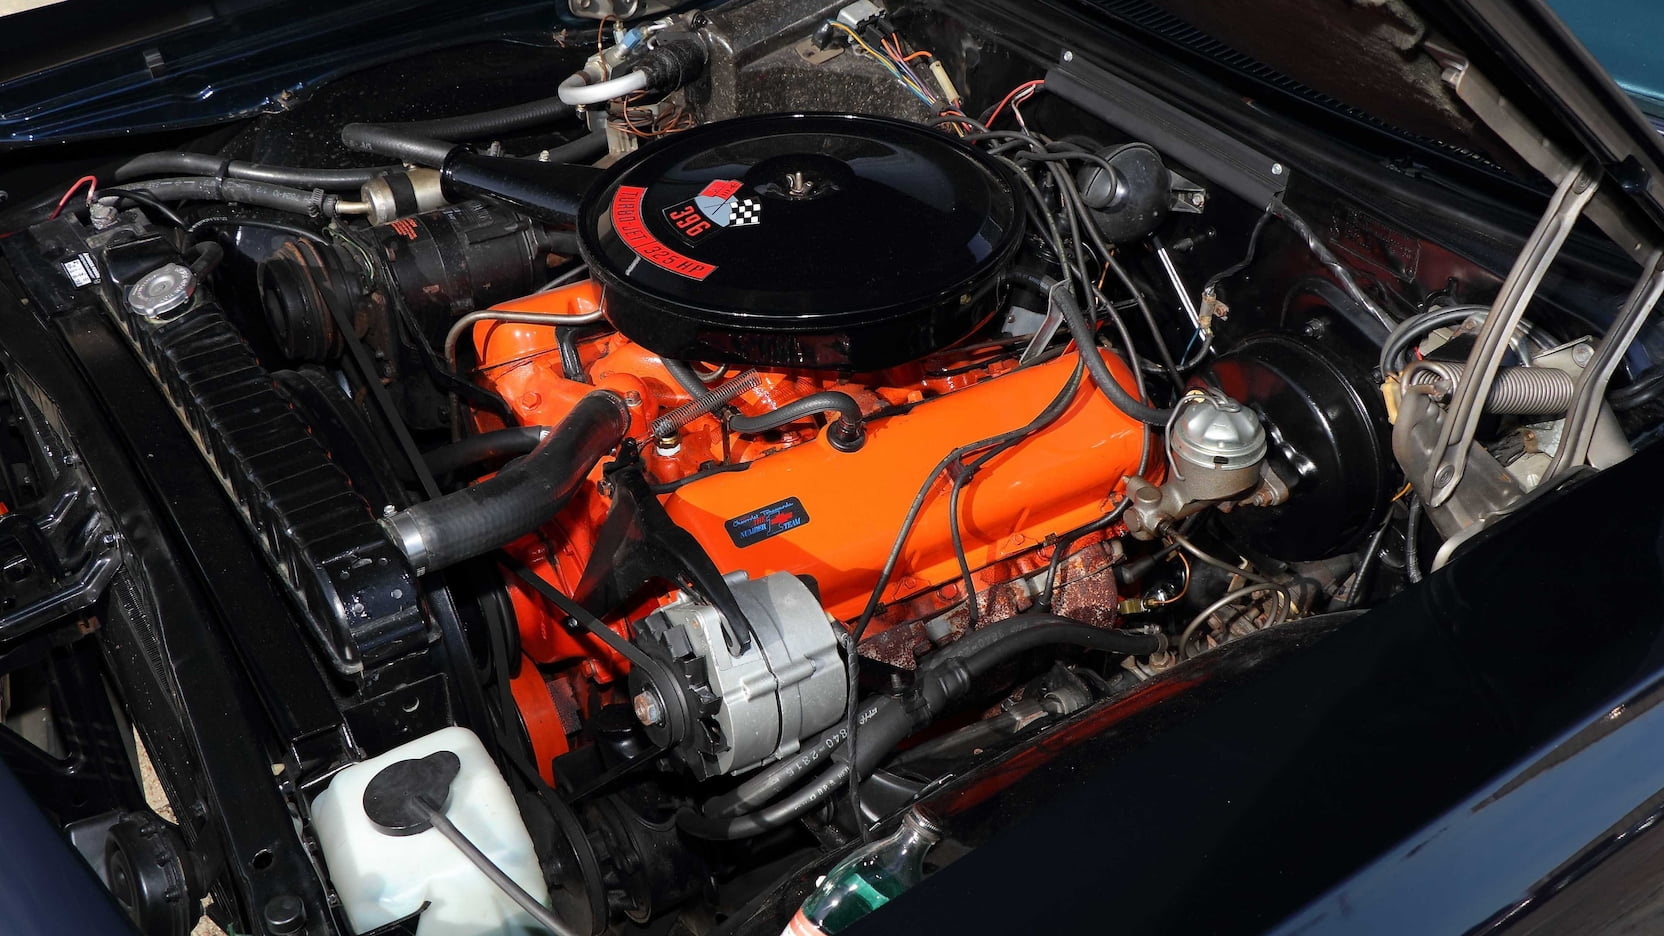 1966 Chevrolet Caprice engine